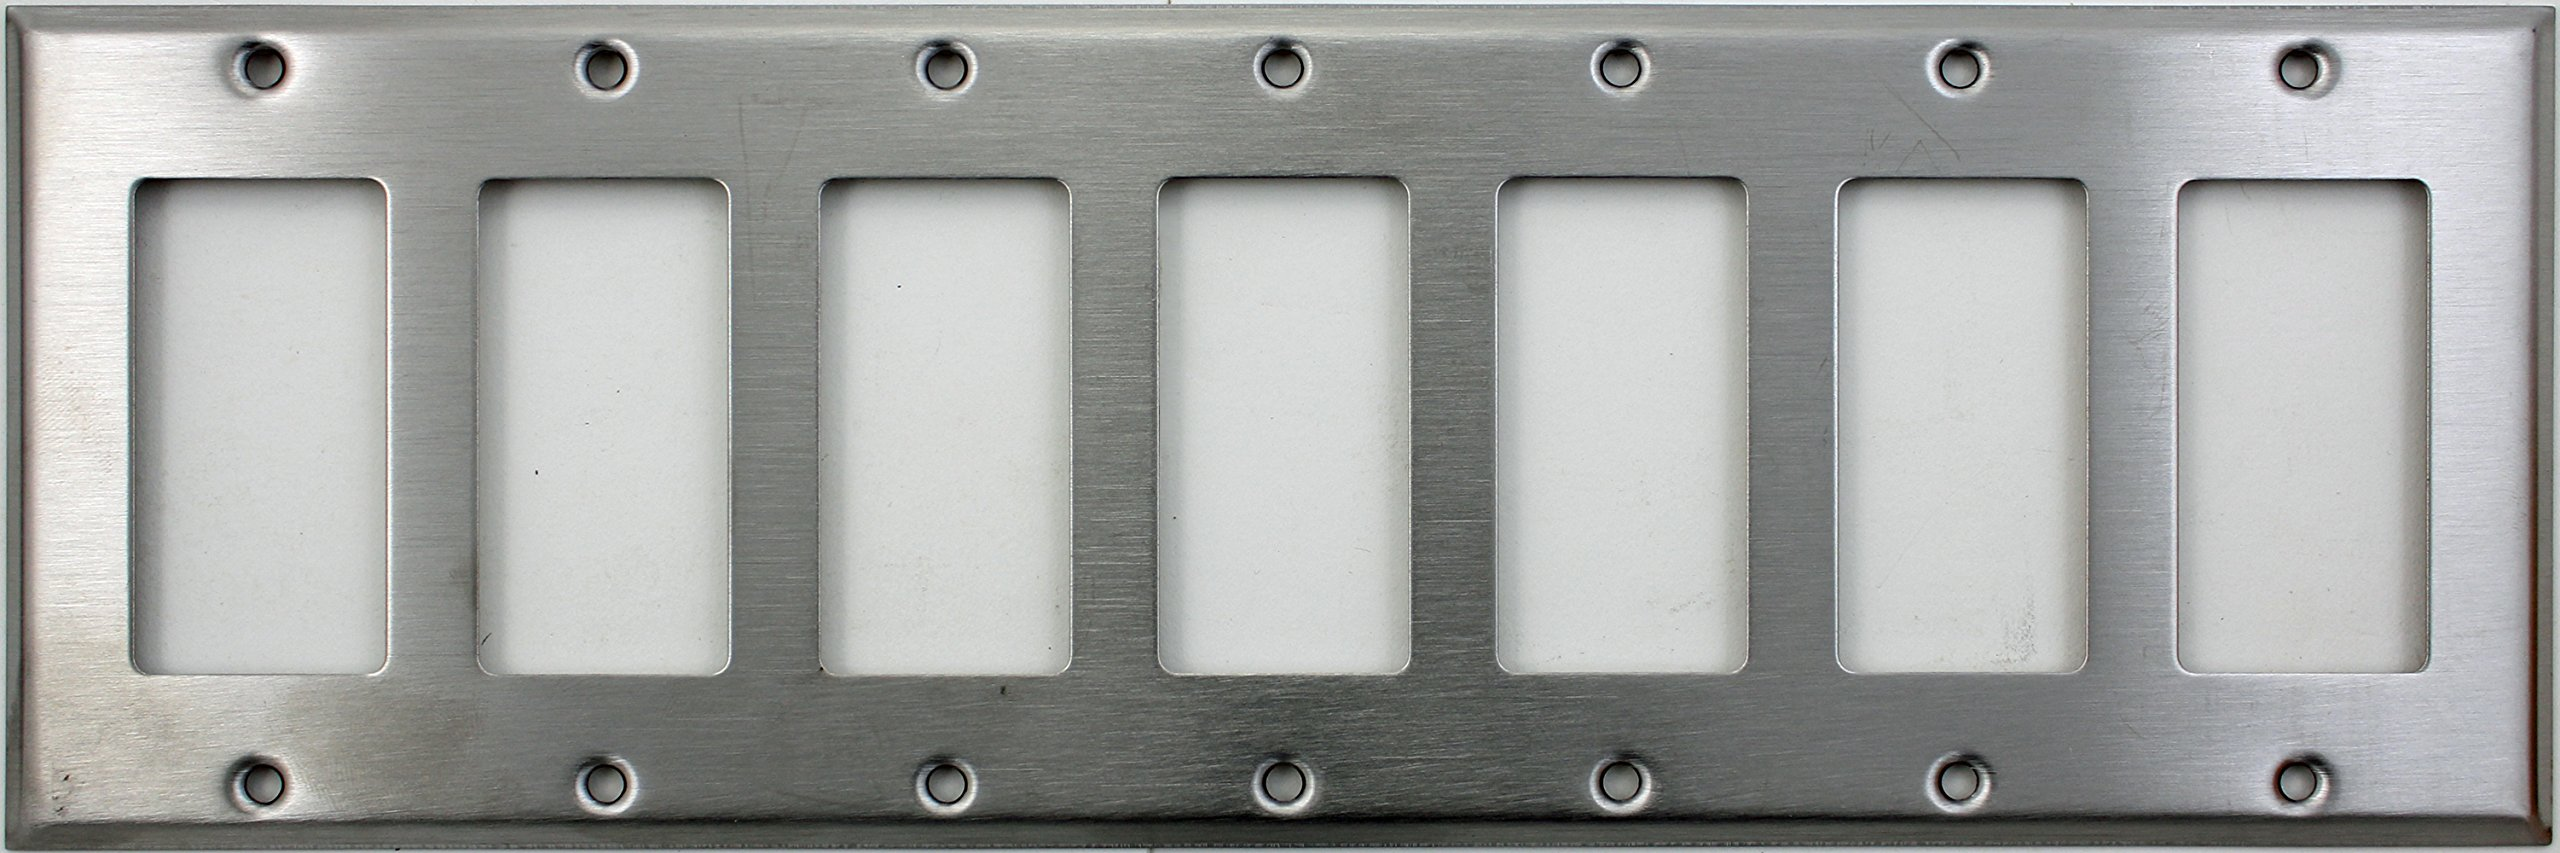 Brushed Satin Stainless Steel 7 Gang GFI/Rocker Switch Wall Plate